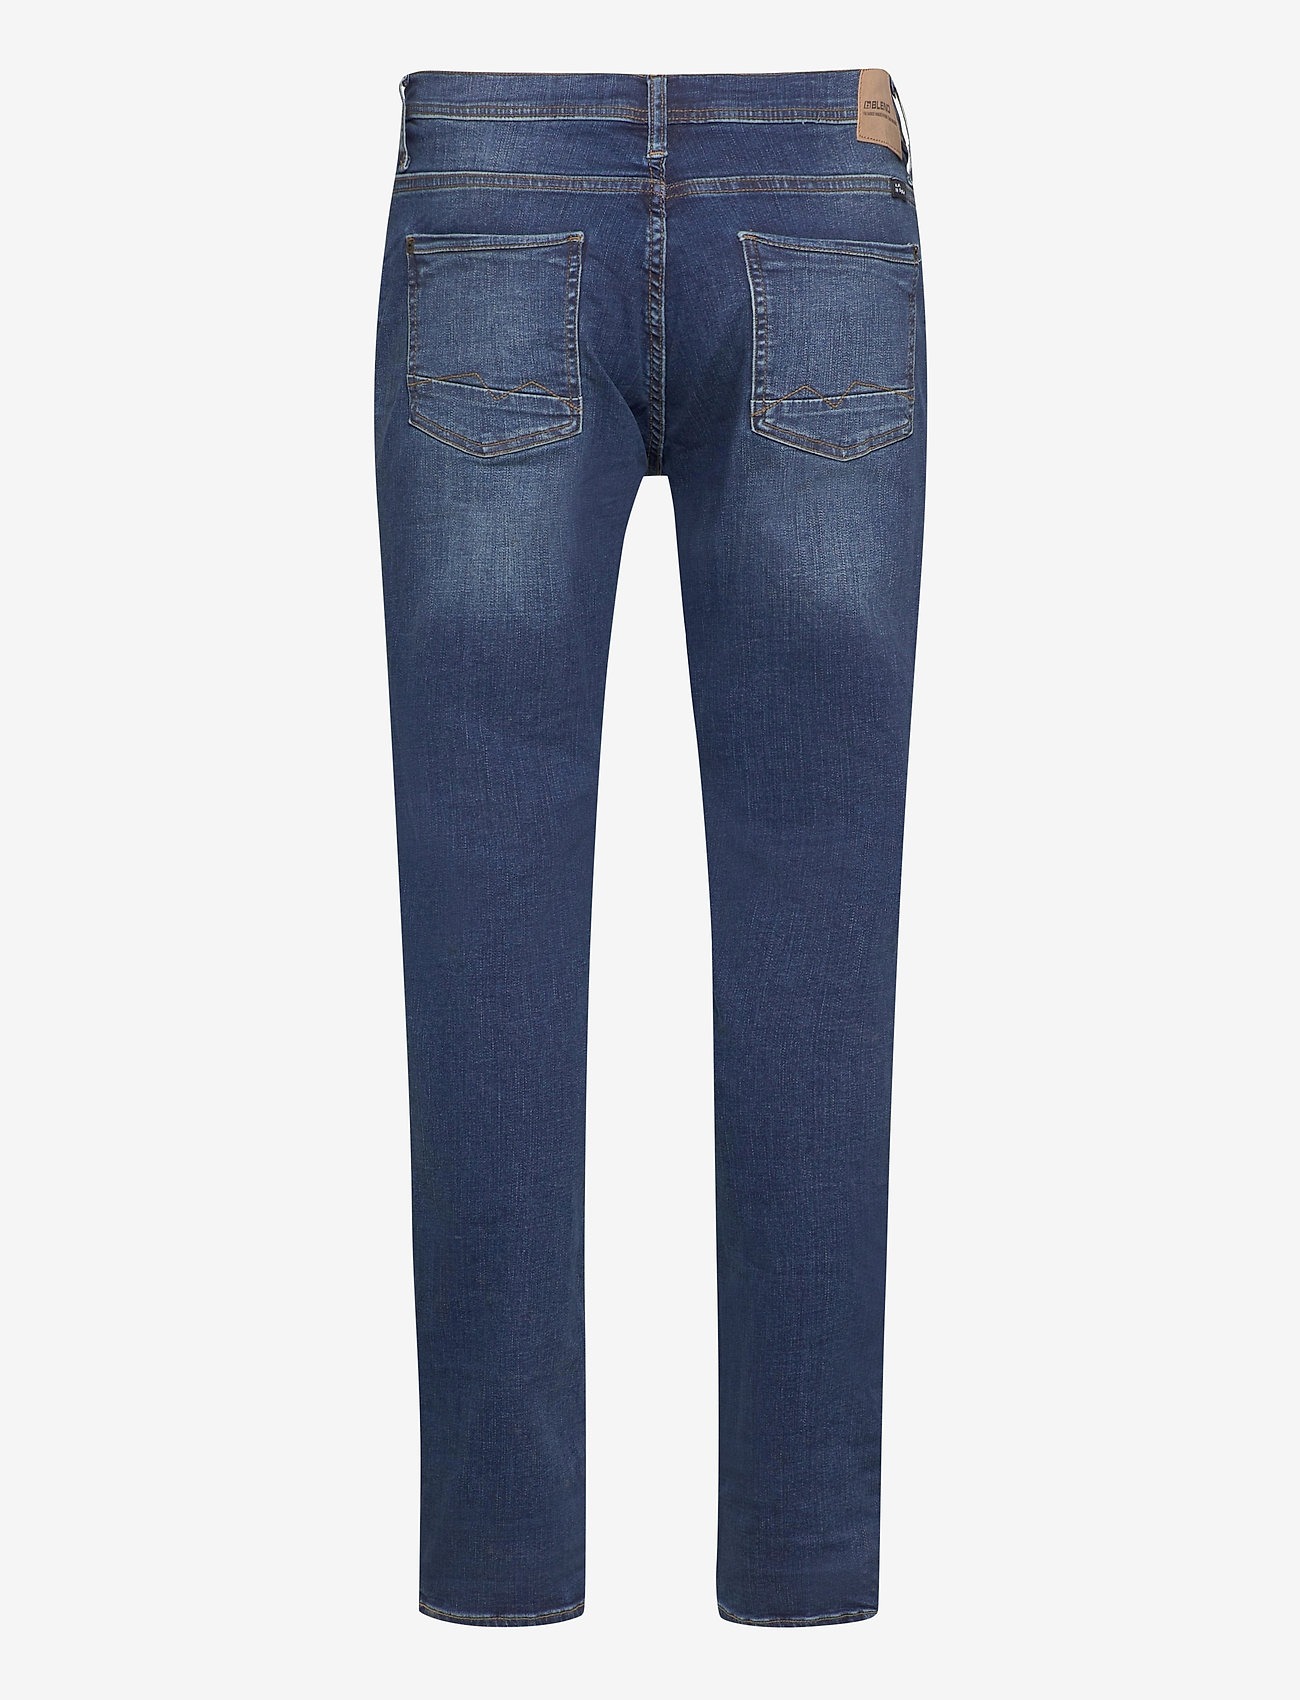 Blend - Twister fit Multiflex - NOOS - slim jeans - denim dark blue - 1